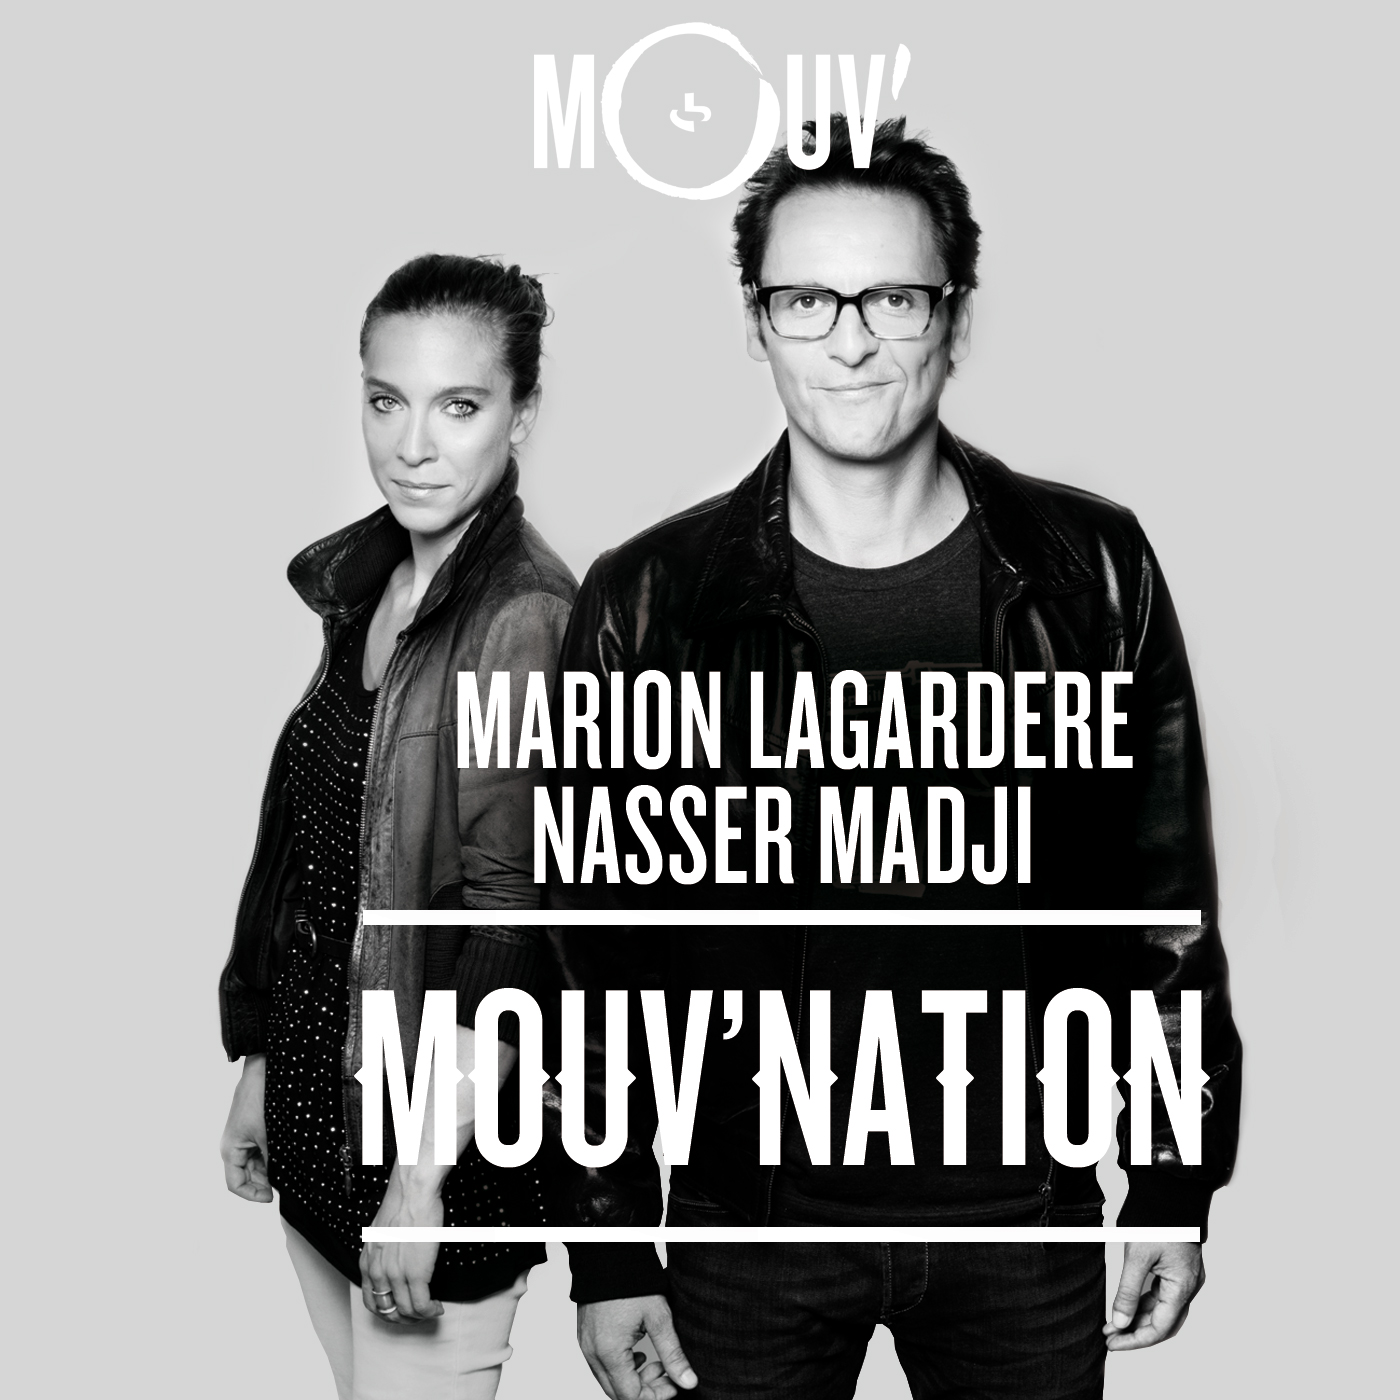 Mouv' Nation